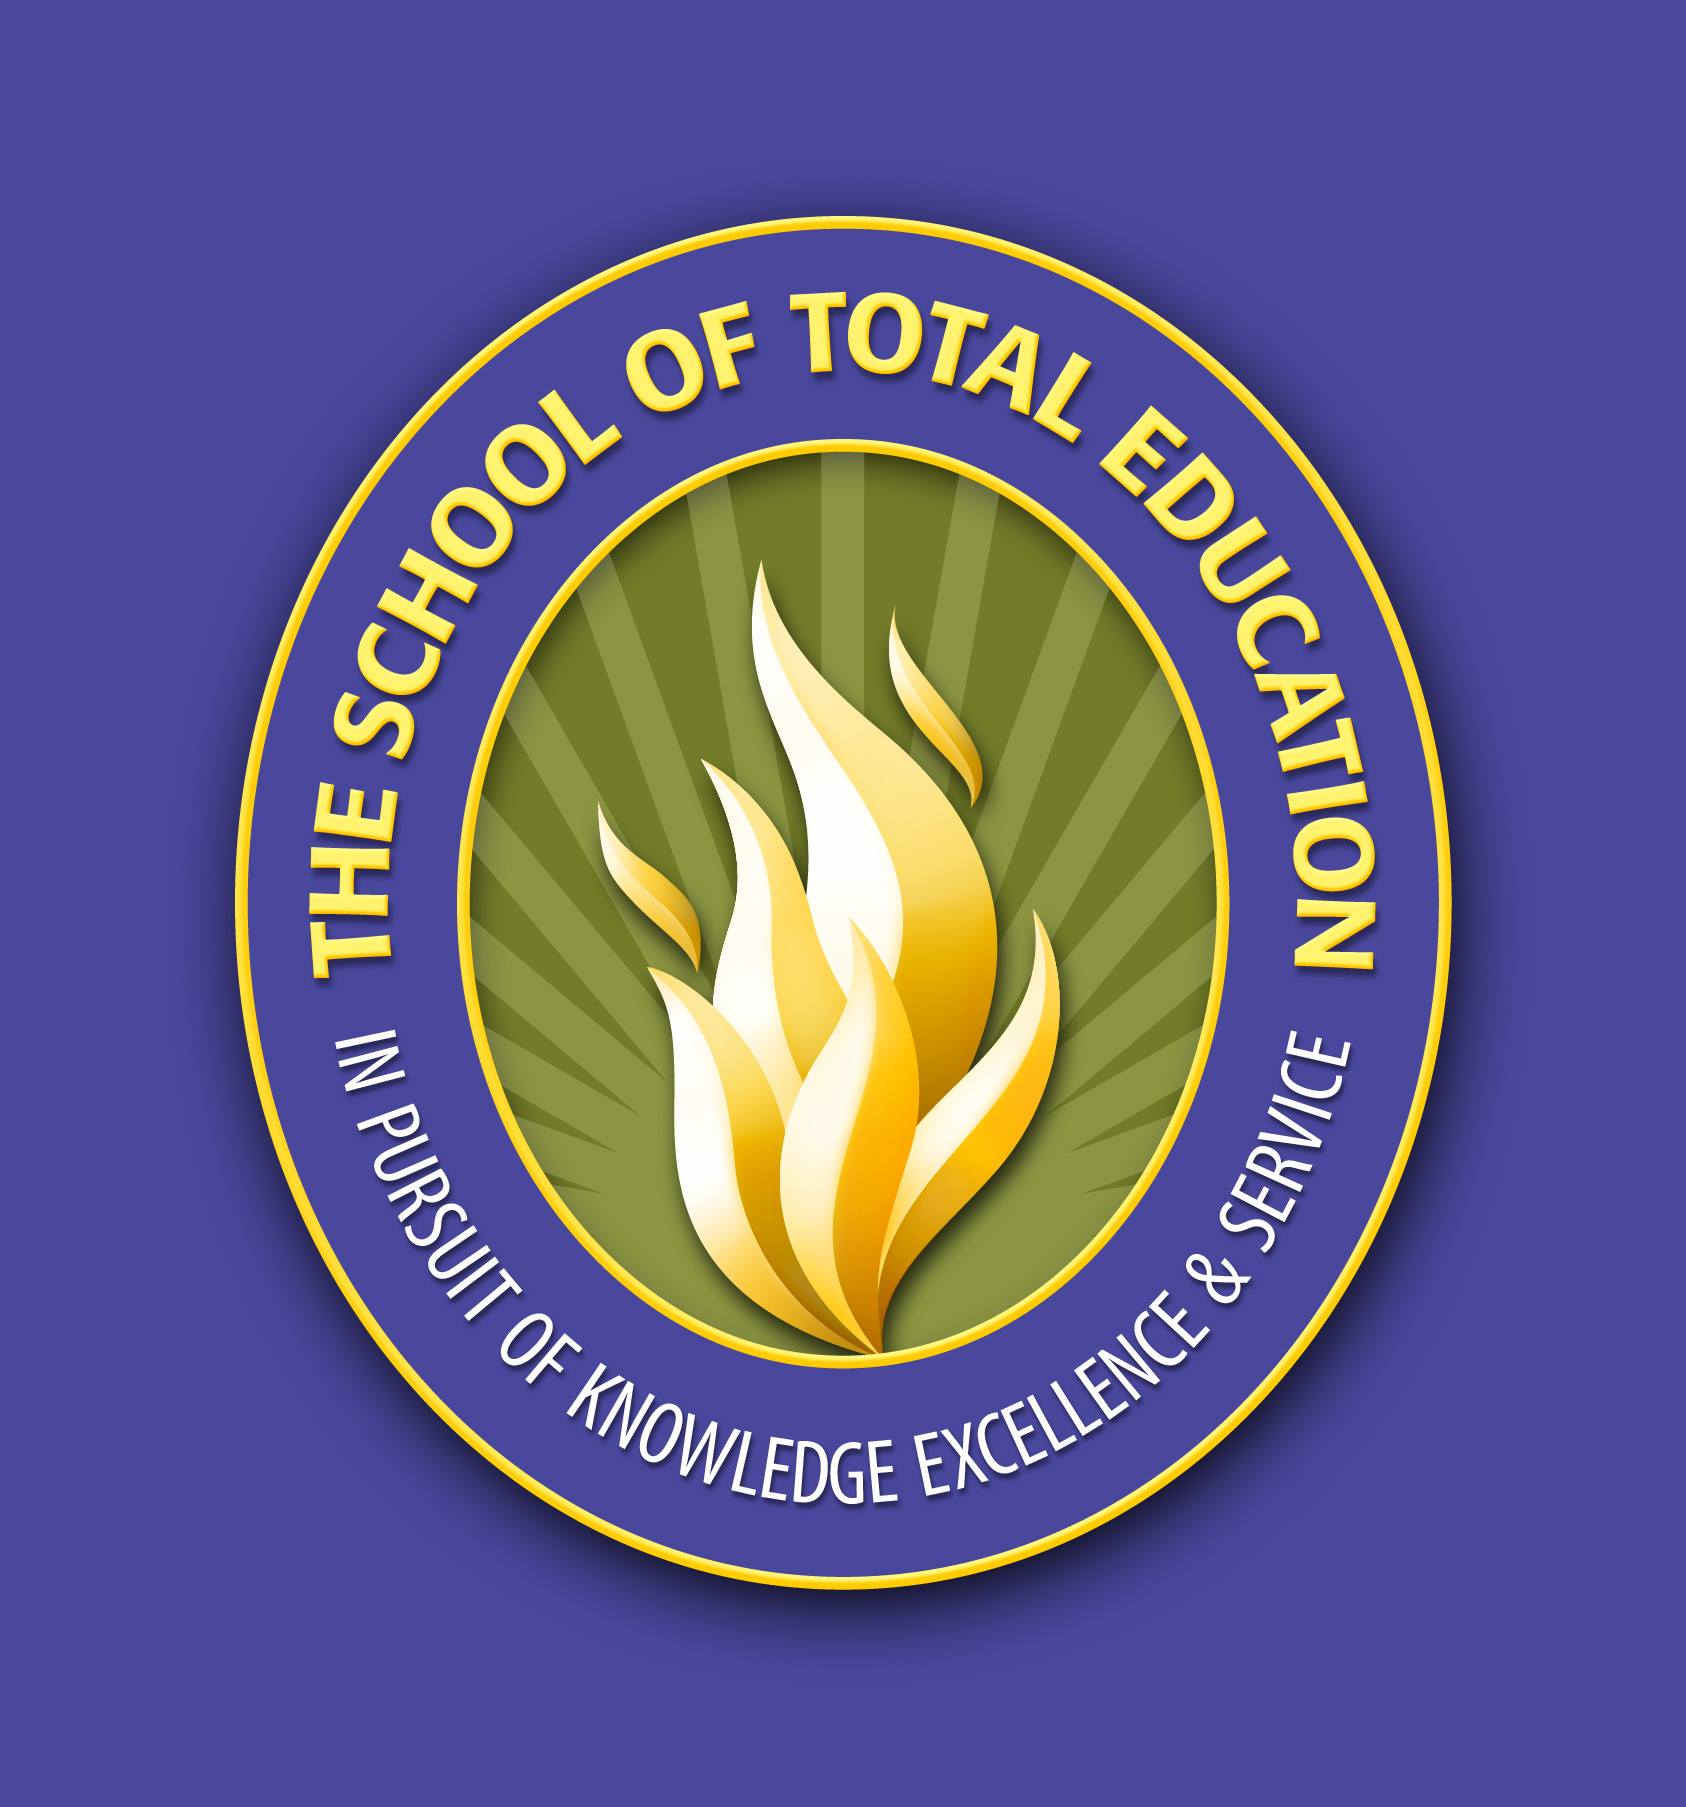 The School of Total Education校徽